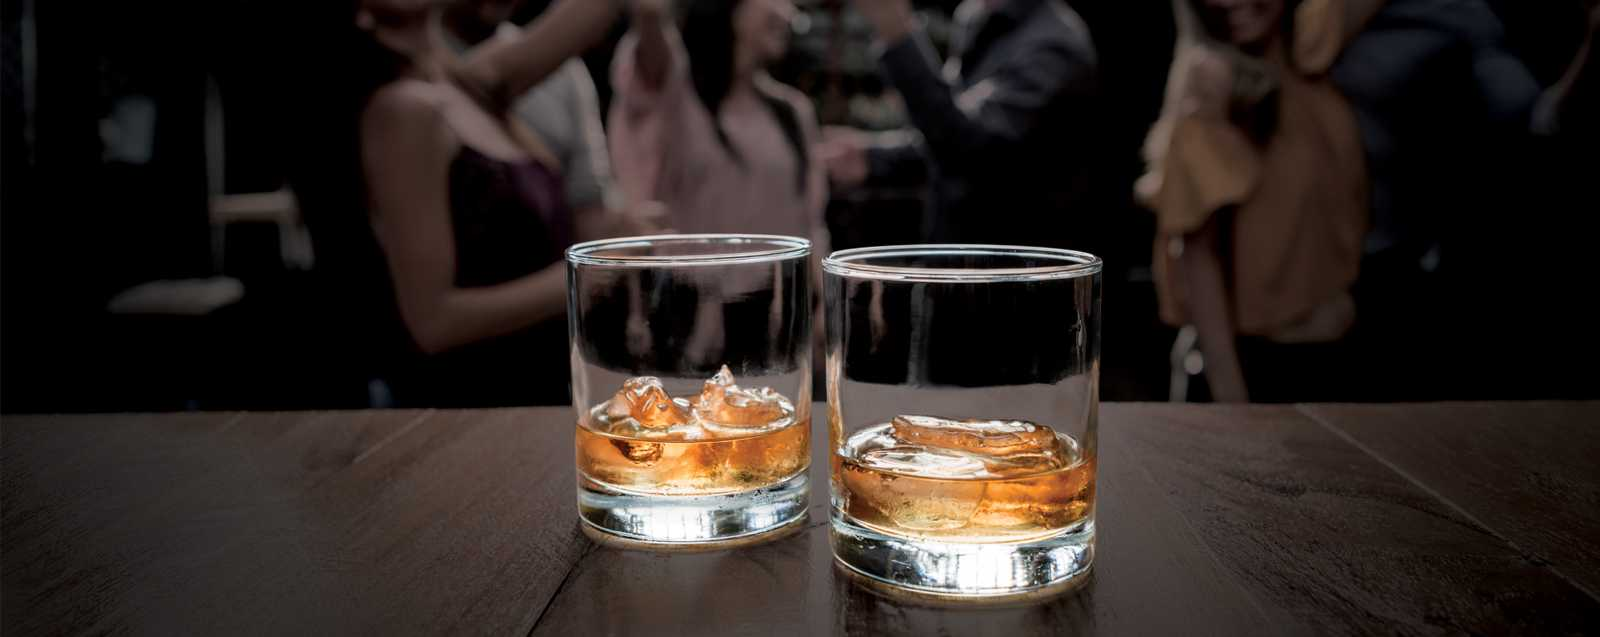 Belfour Spirits image of young group dancing with whiskey glasses on polished would in the foreground